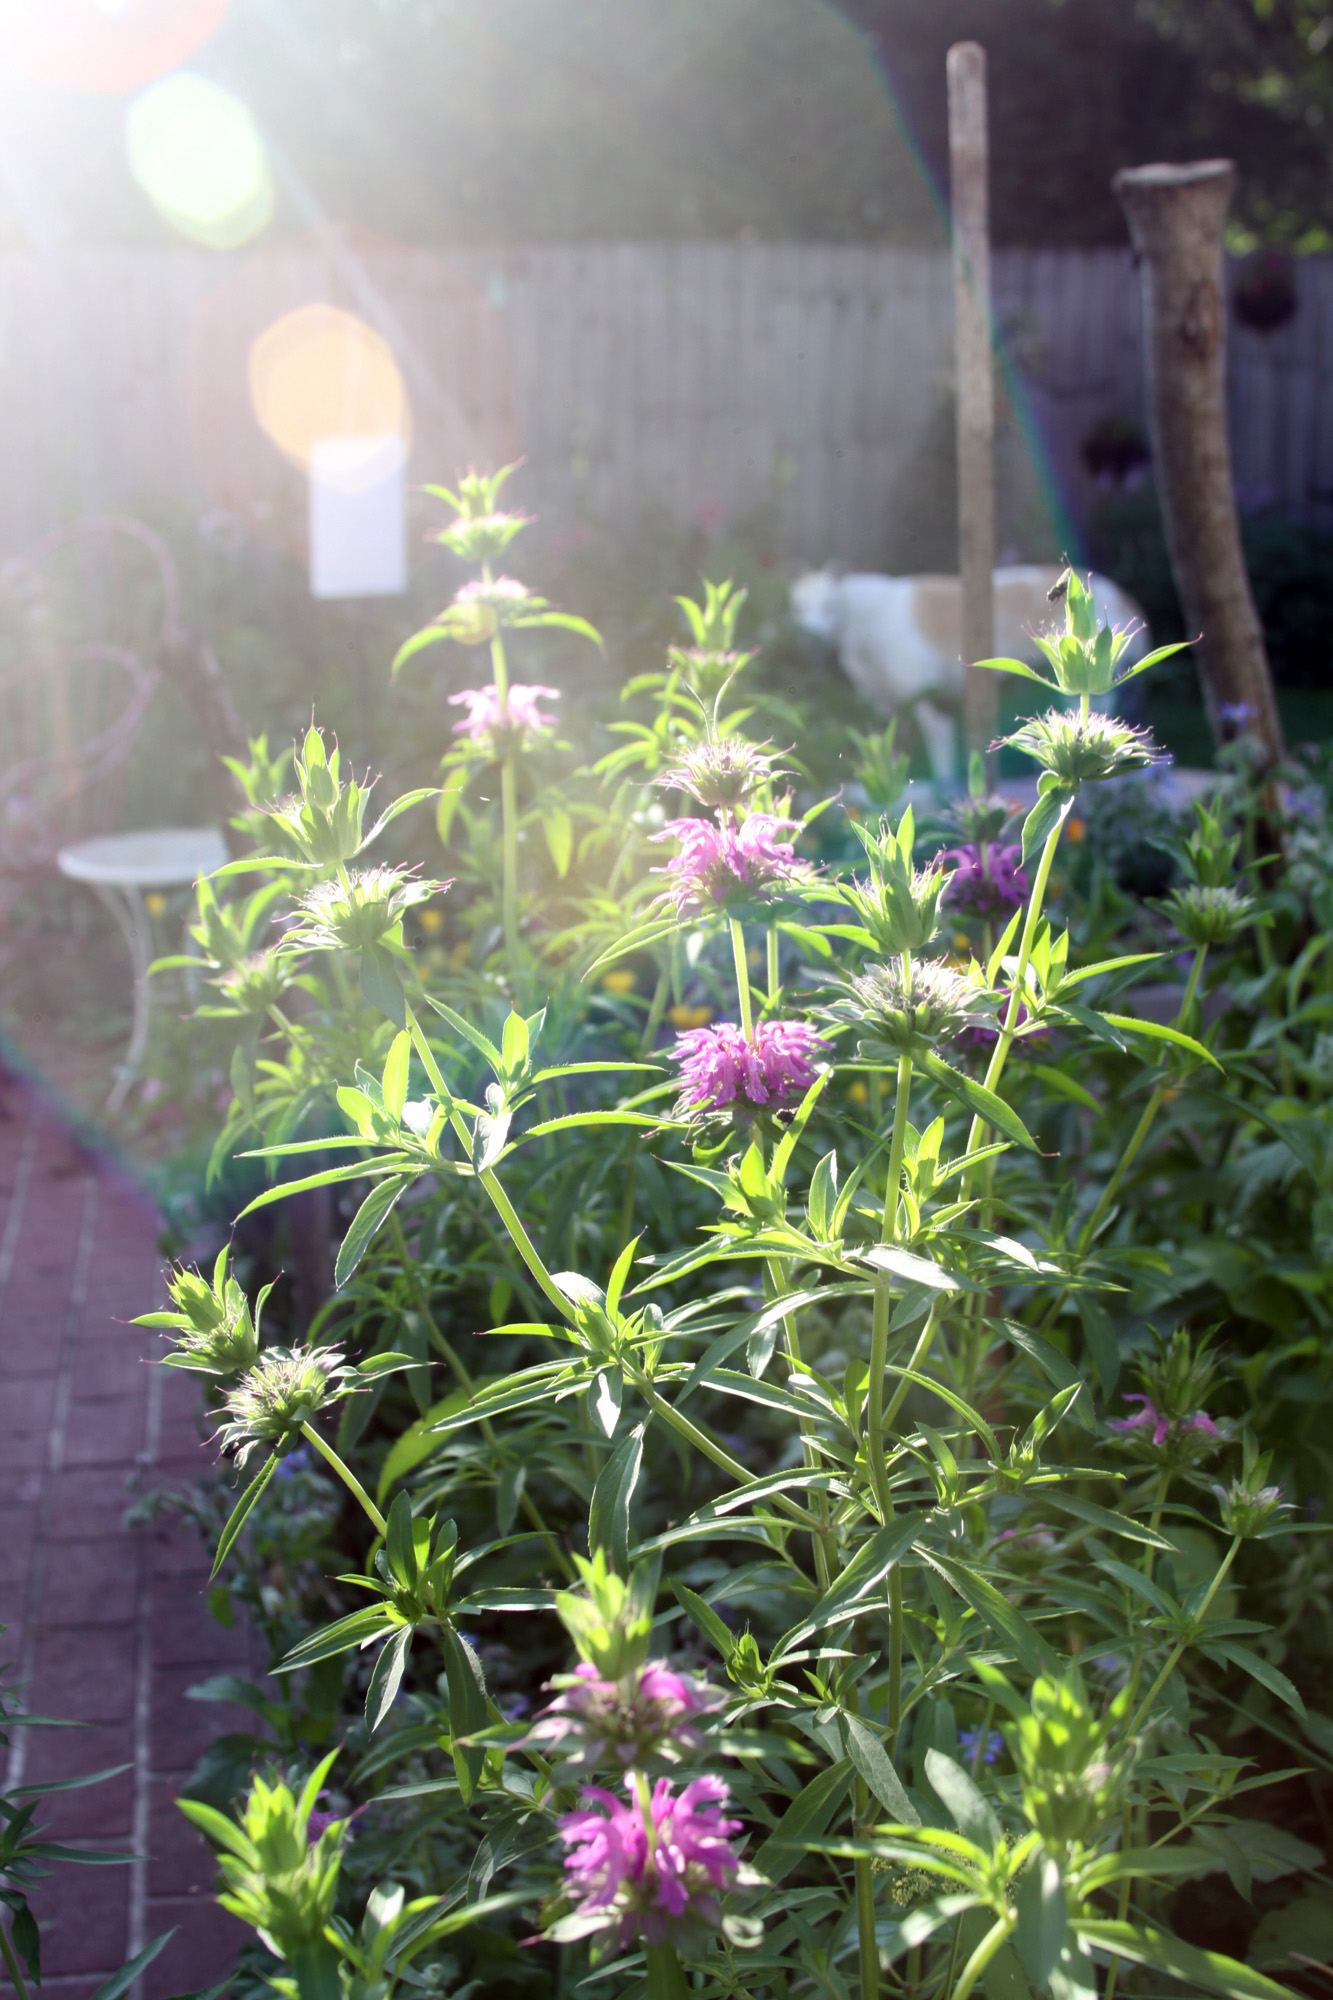 Lemon Mint Blooming in My Morning Garden With Charlie the Rescued Greyhound Watching